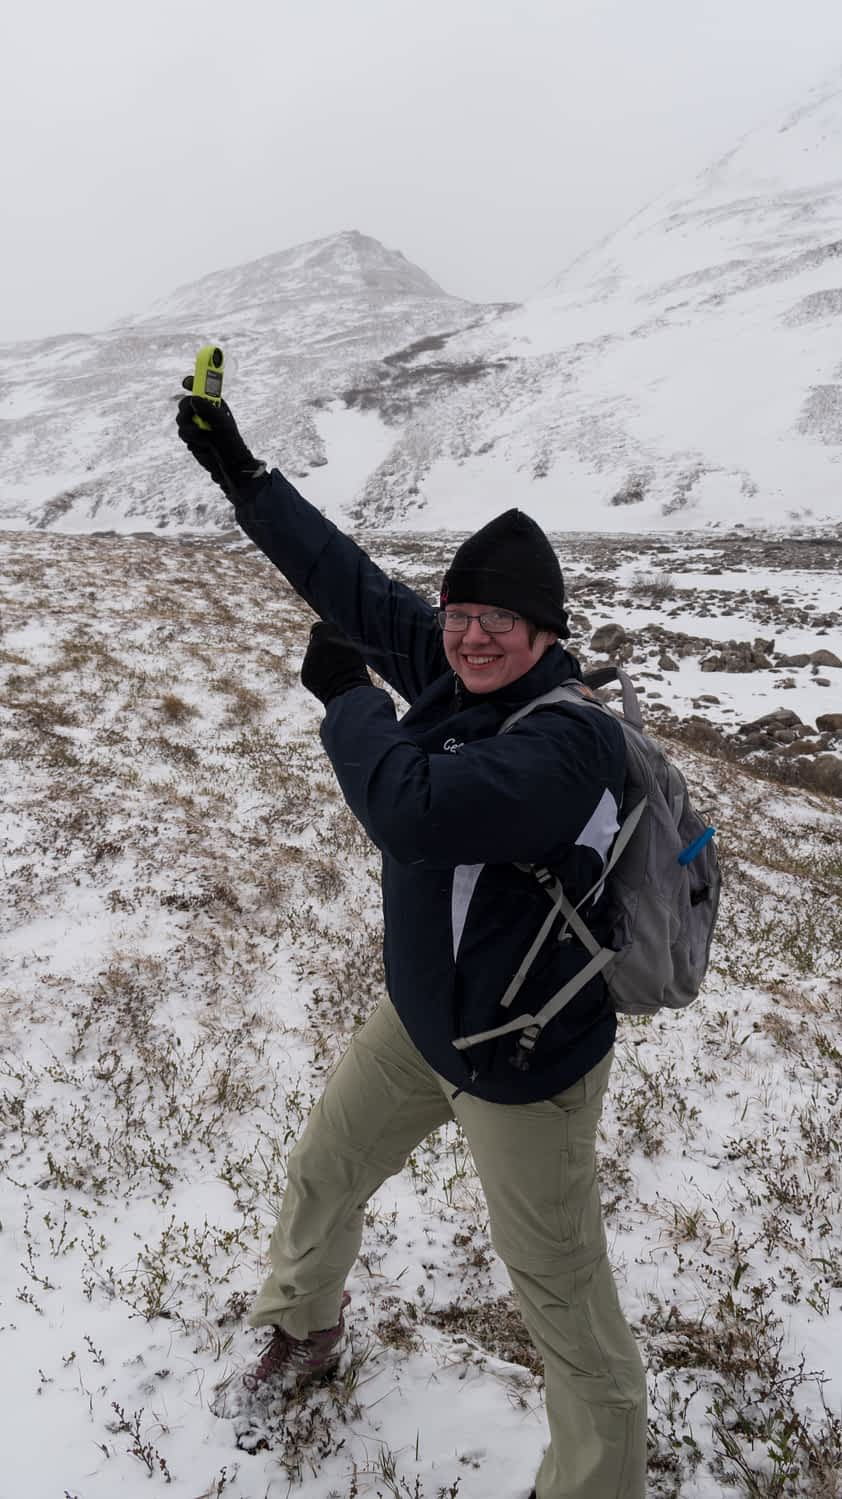 Celia Fisher participated in a 10-week summer research internship at the National Weather Service office in Fairbanks, Alaska as part of the NOAA Ernest F. Hollings Undergraduate Scholars program.